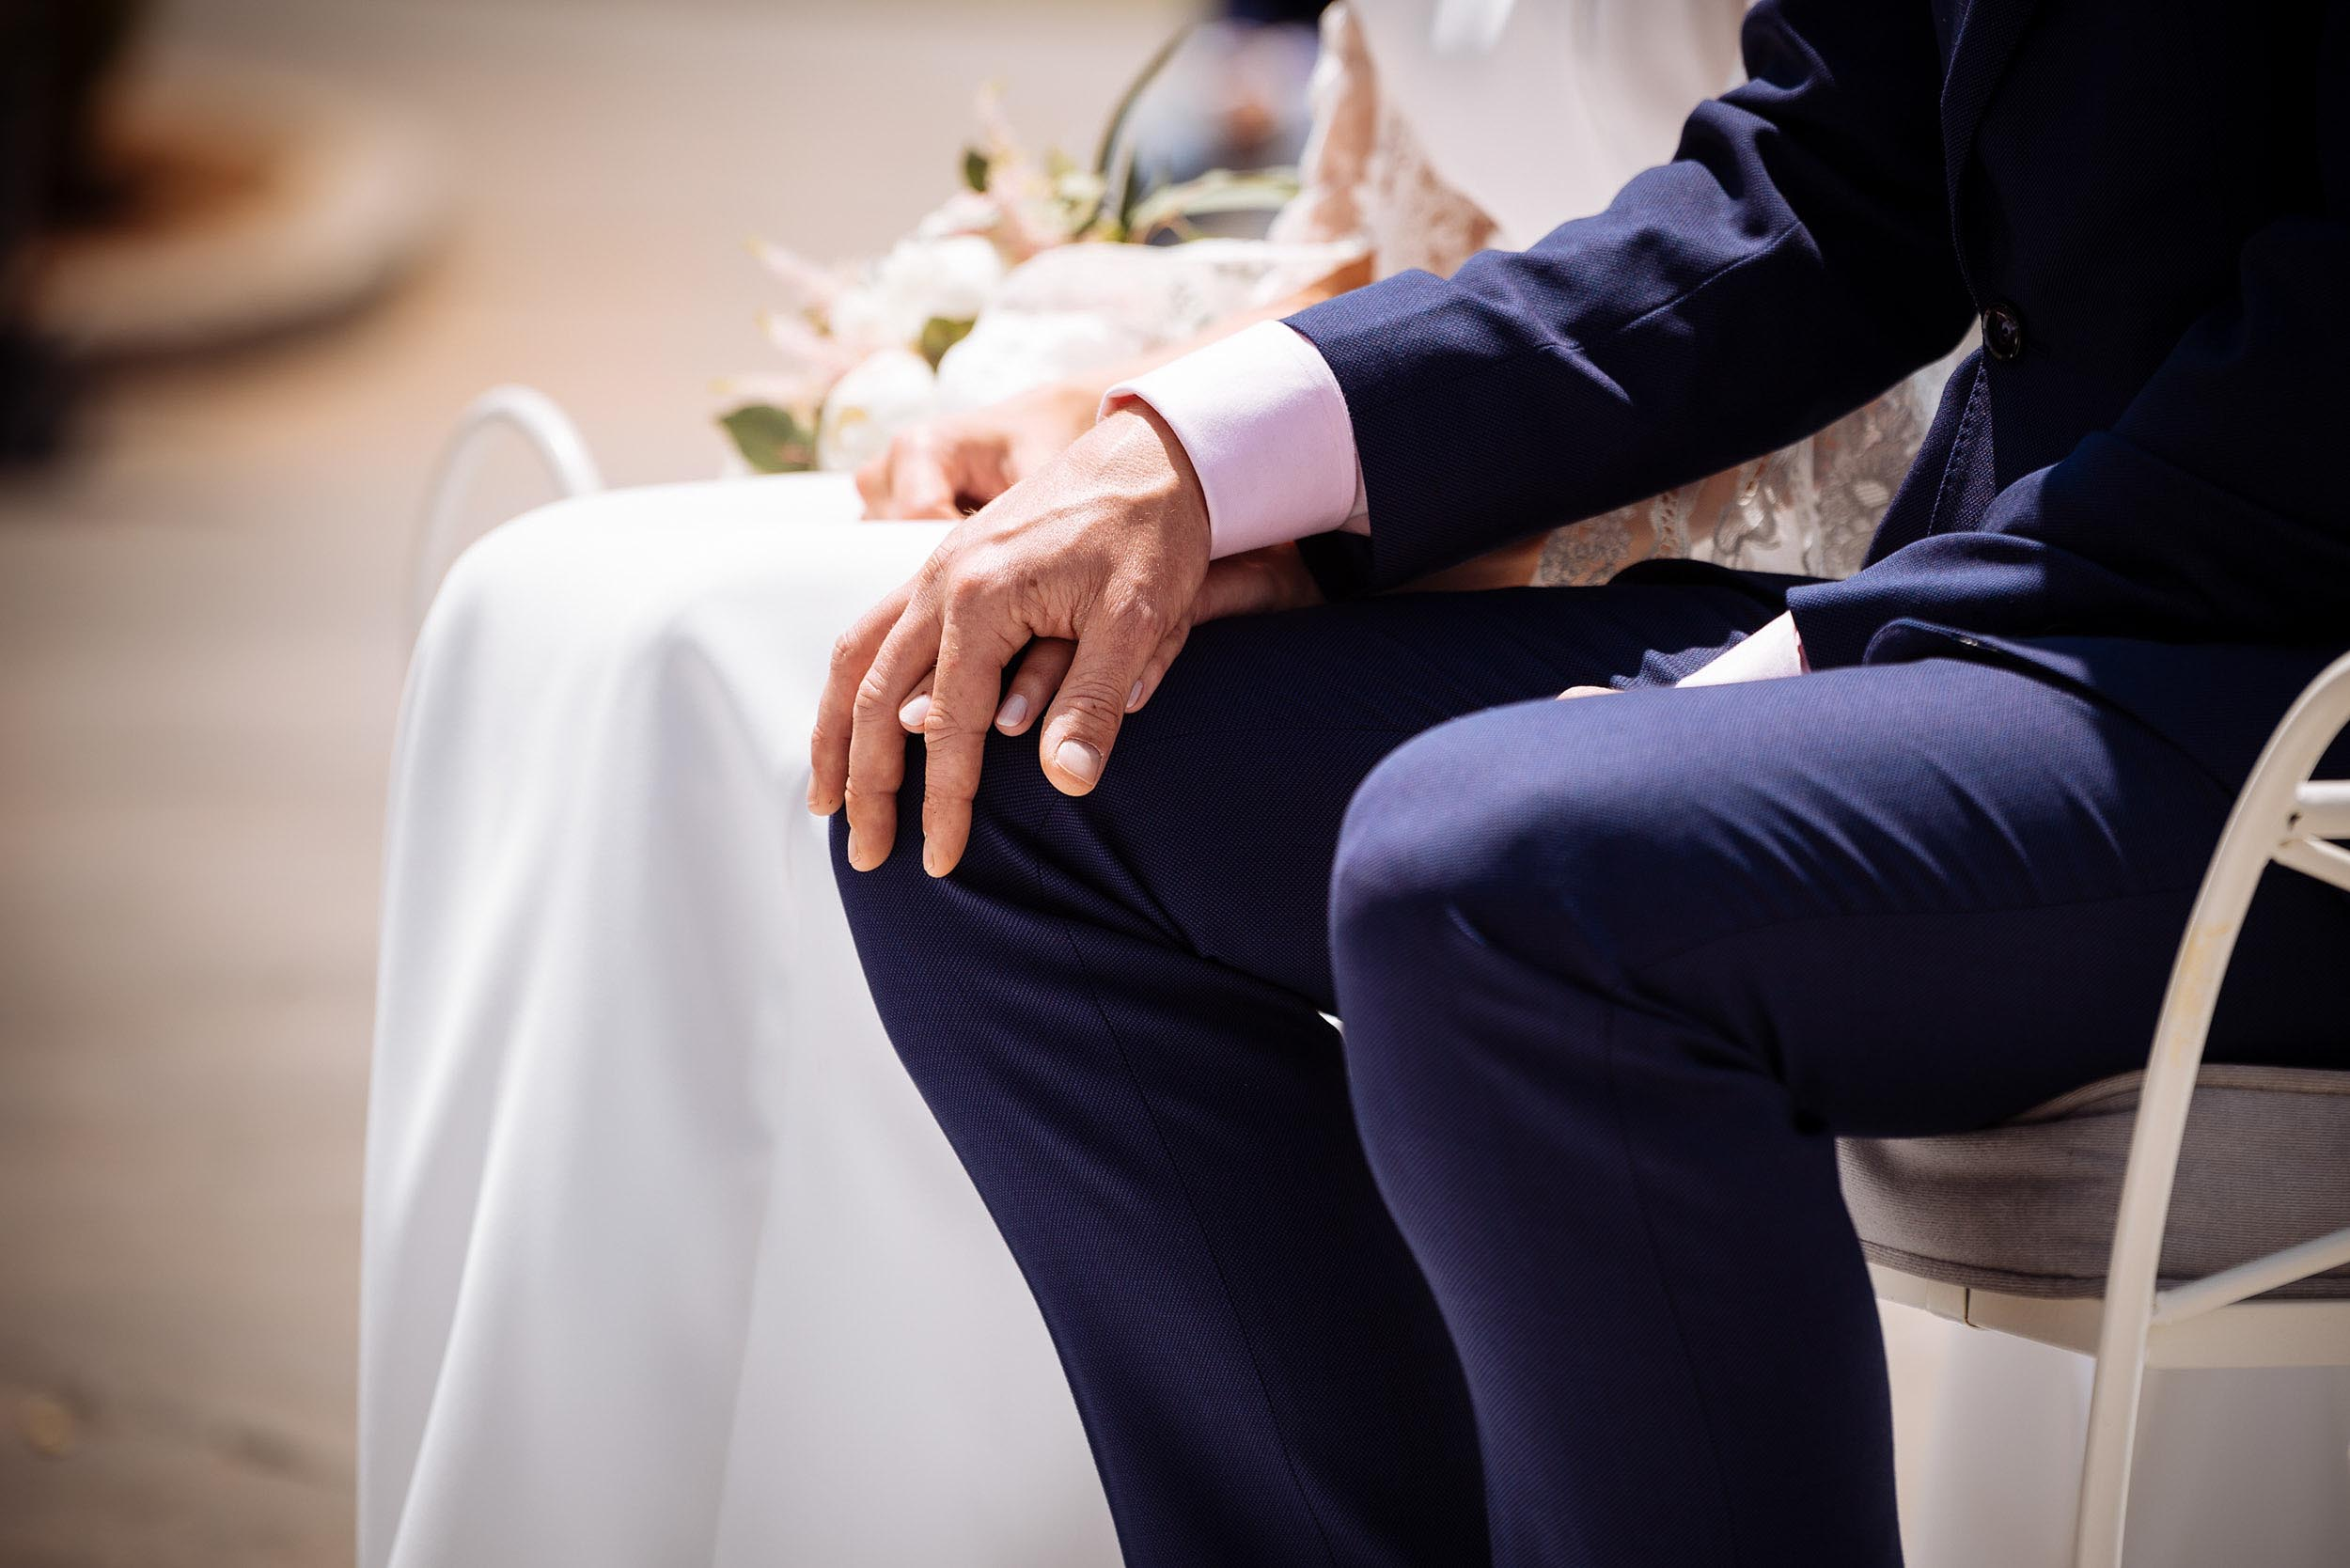 couple-holding-hands-wedding-ceremony-love-together